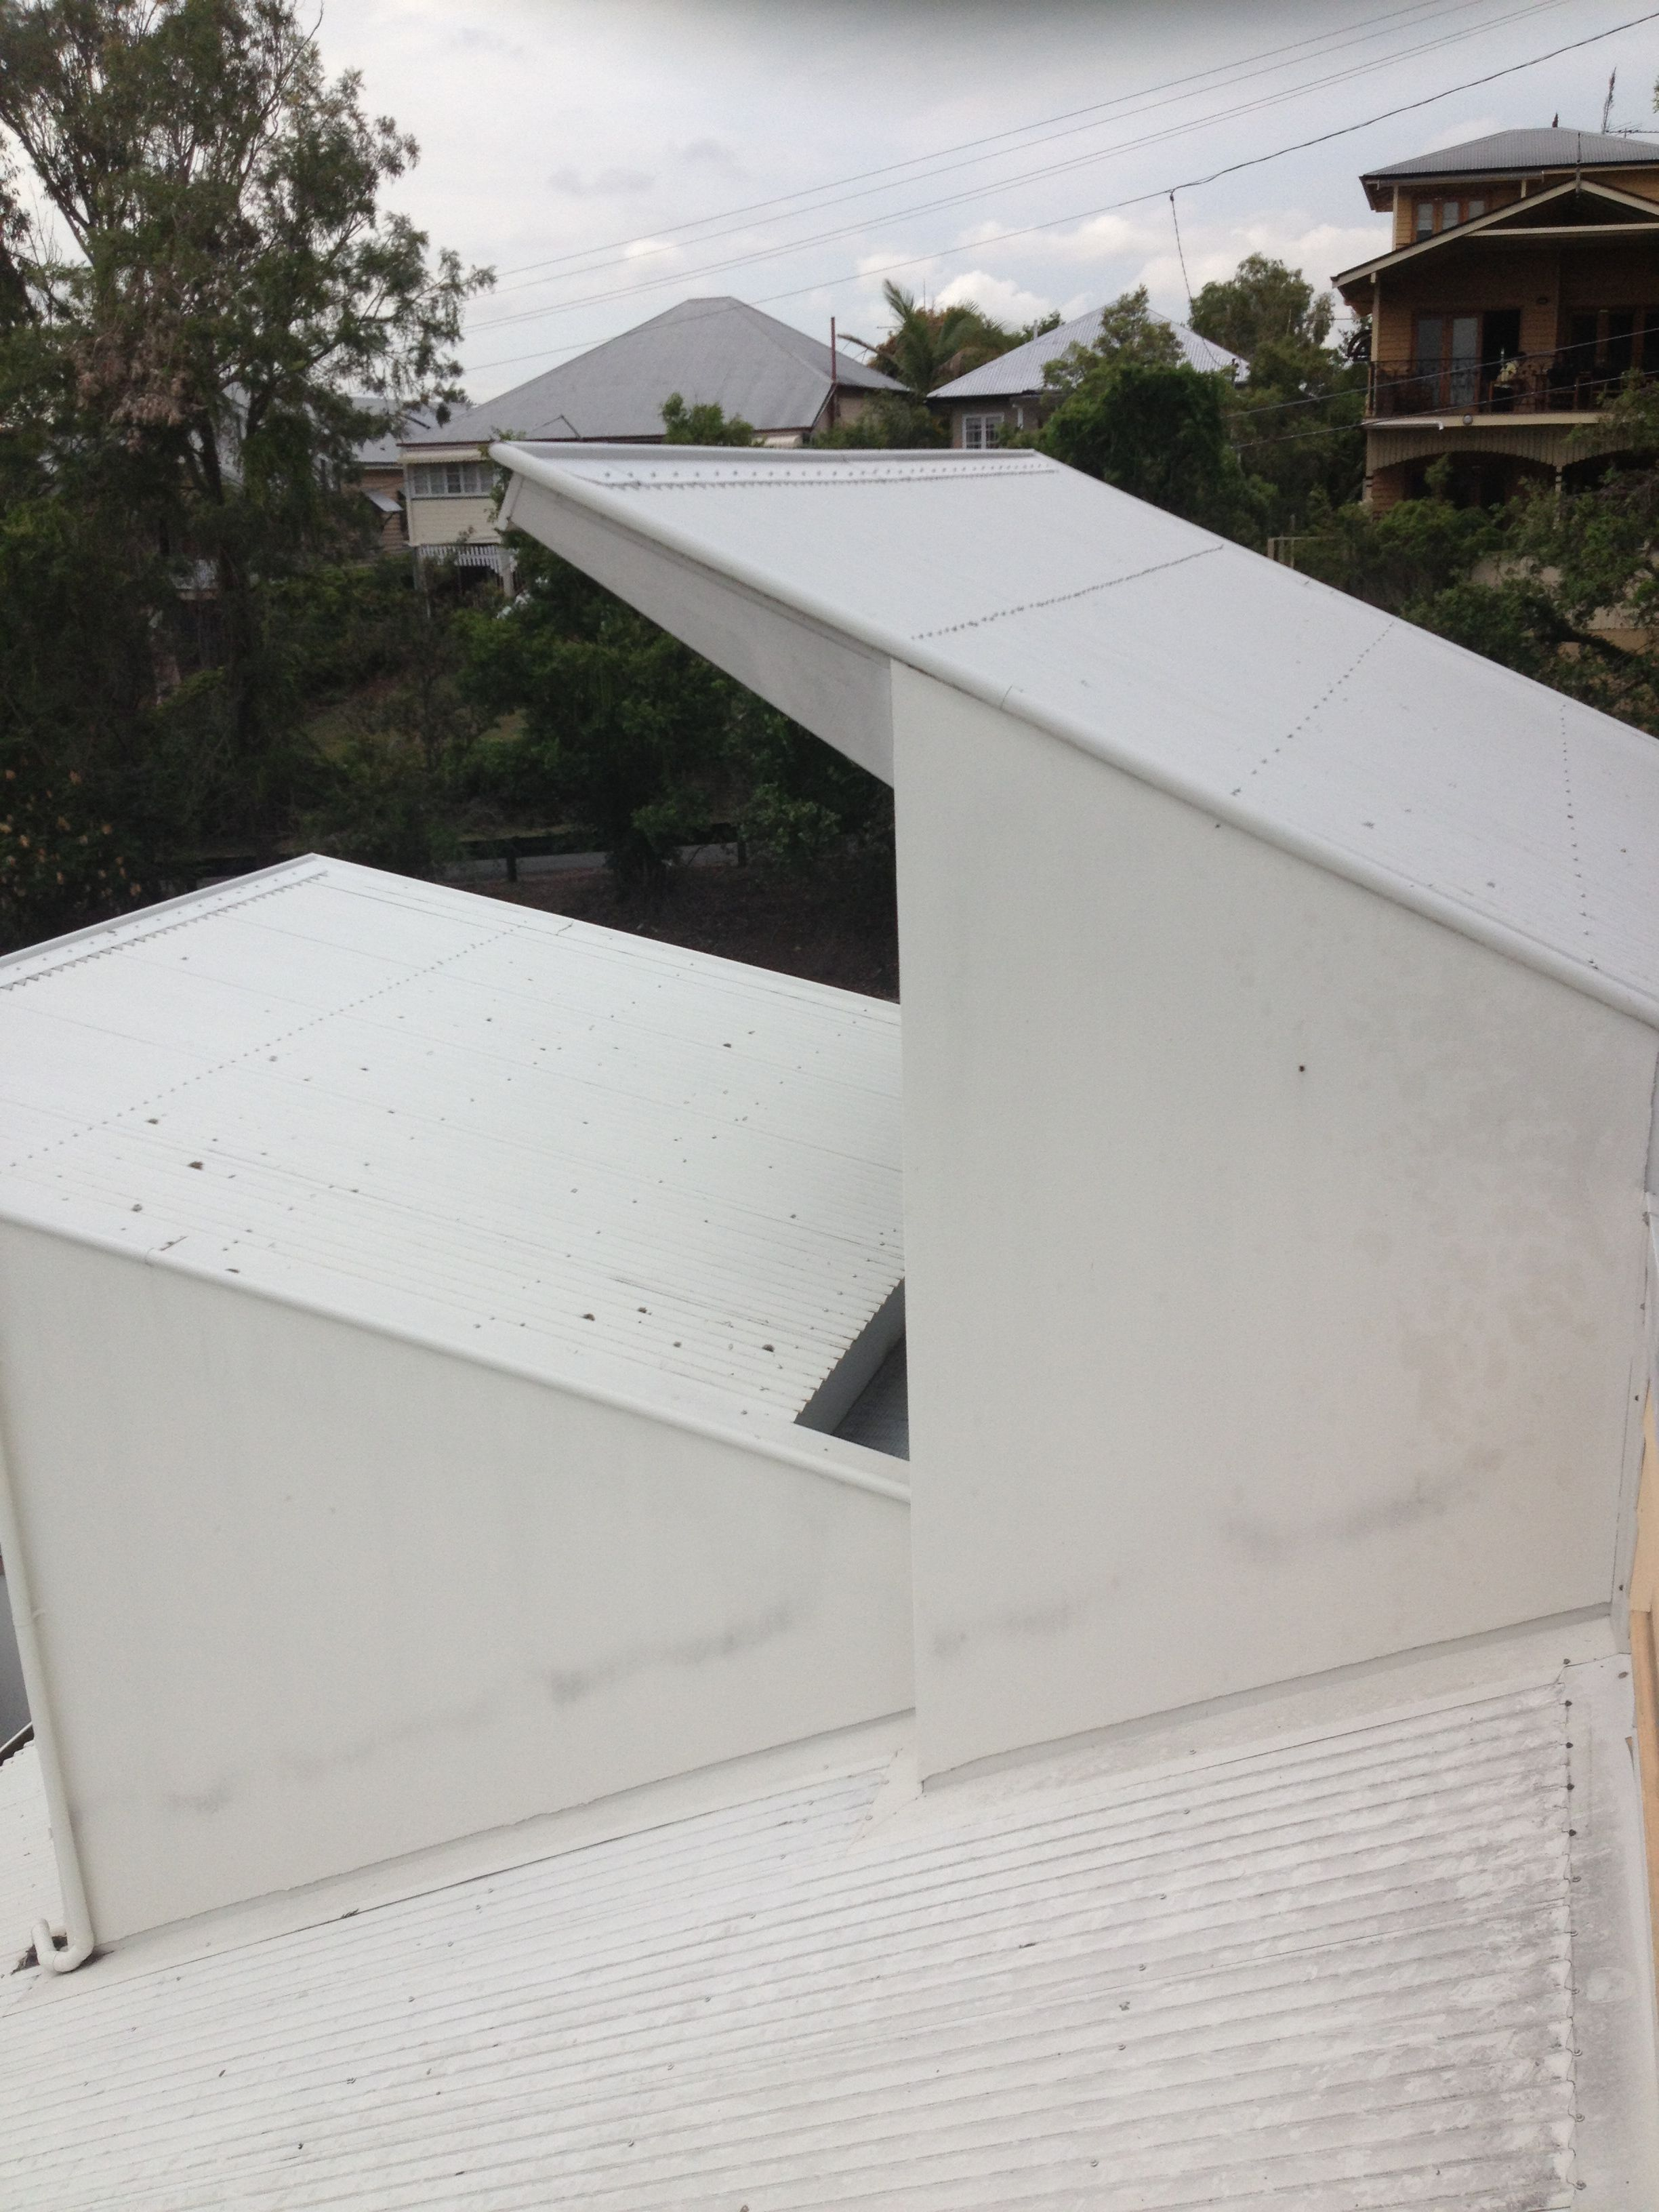 Steep Tin Roof Before Cleaning Don T Risk Climbing On You Roof Call Us Today For A Free Quote 07 3399 4951 Www Completeclean Com Au Roof Cleaning